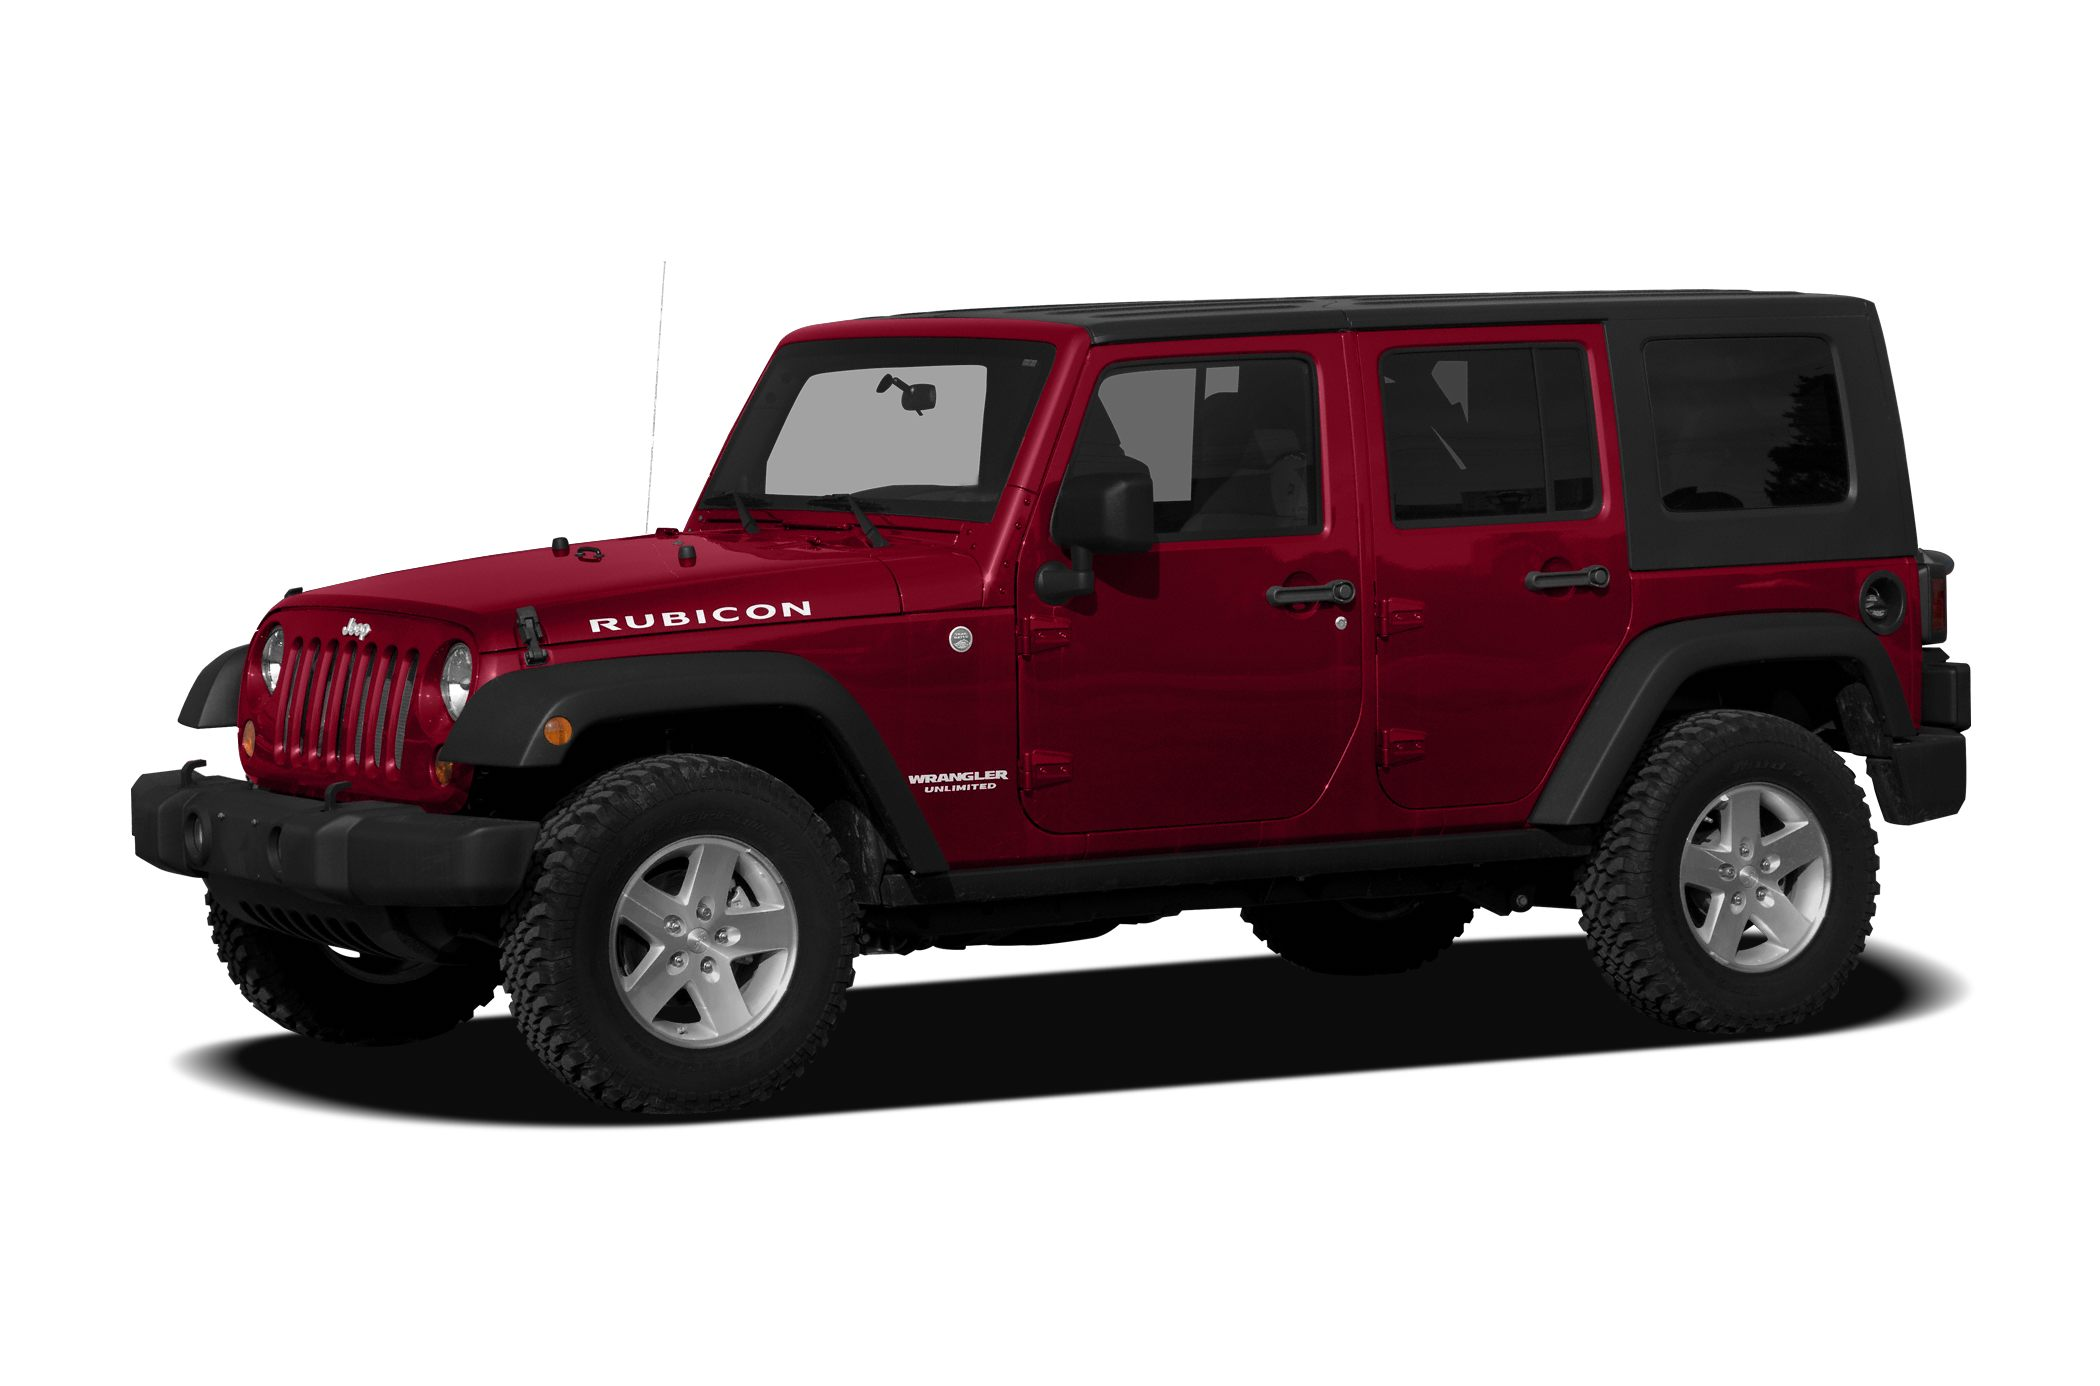 2009 Jeep Wrangler Unlimited X Wrangler Unlimited X and 38L V6 SMPI Silver Bullet 4 Wheel Drive